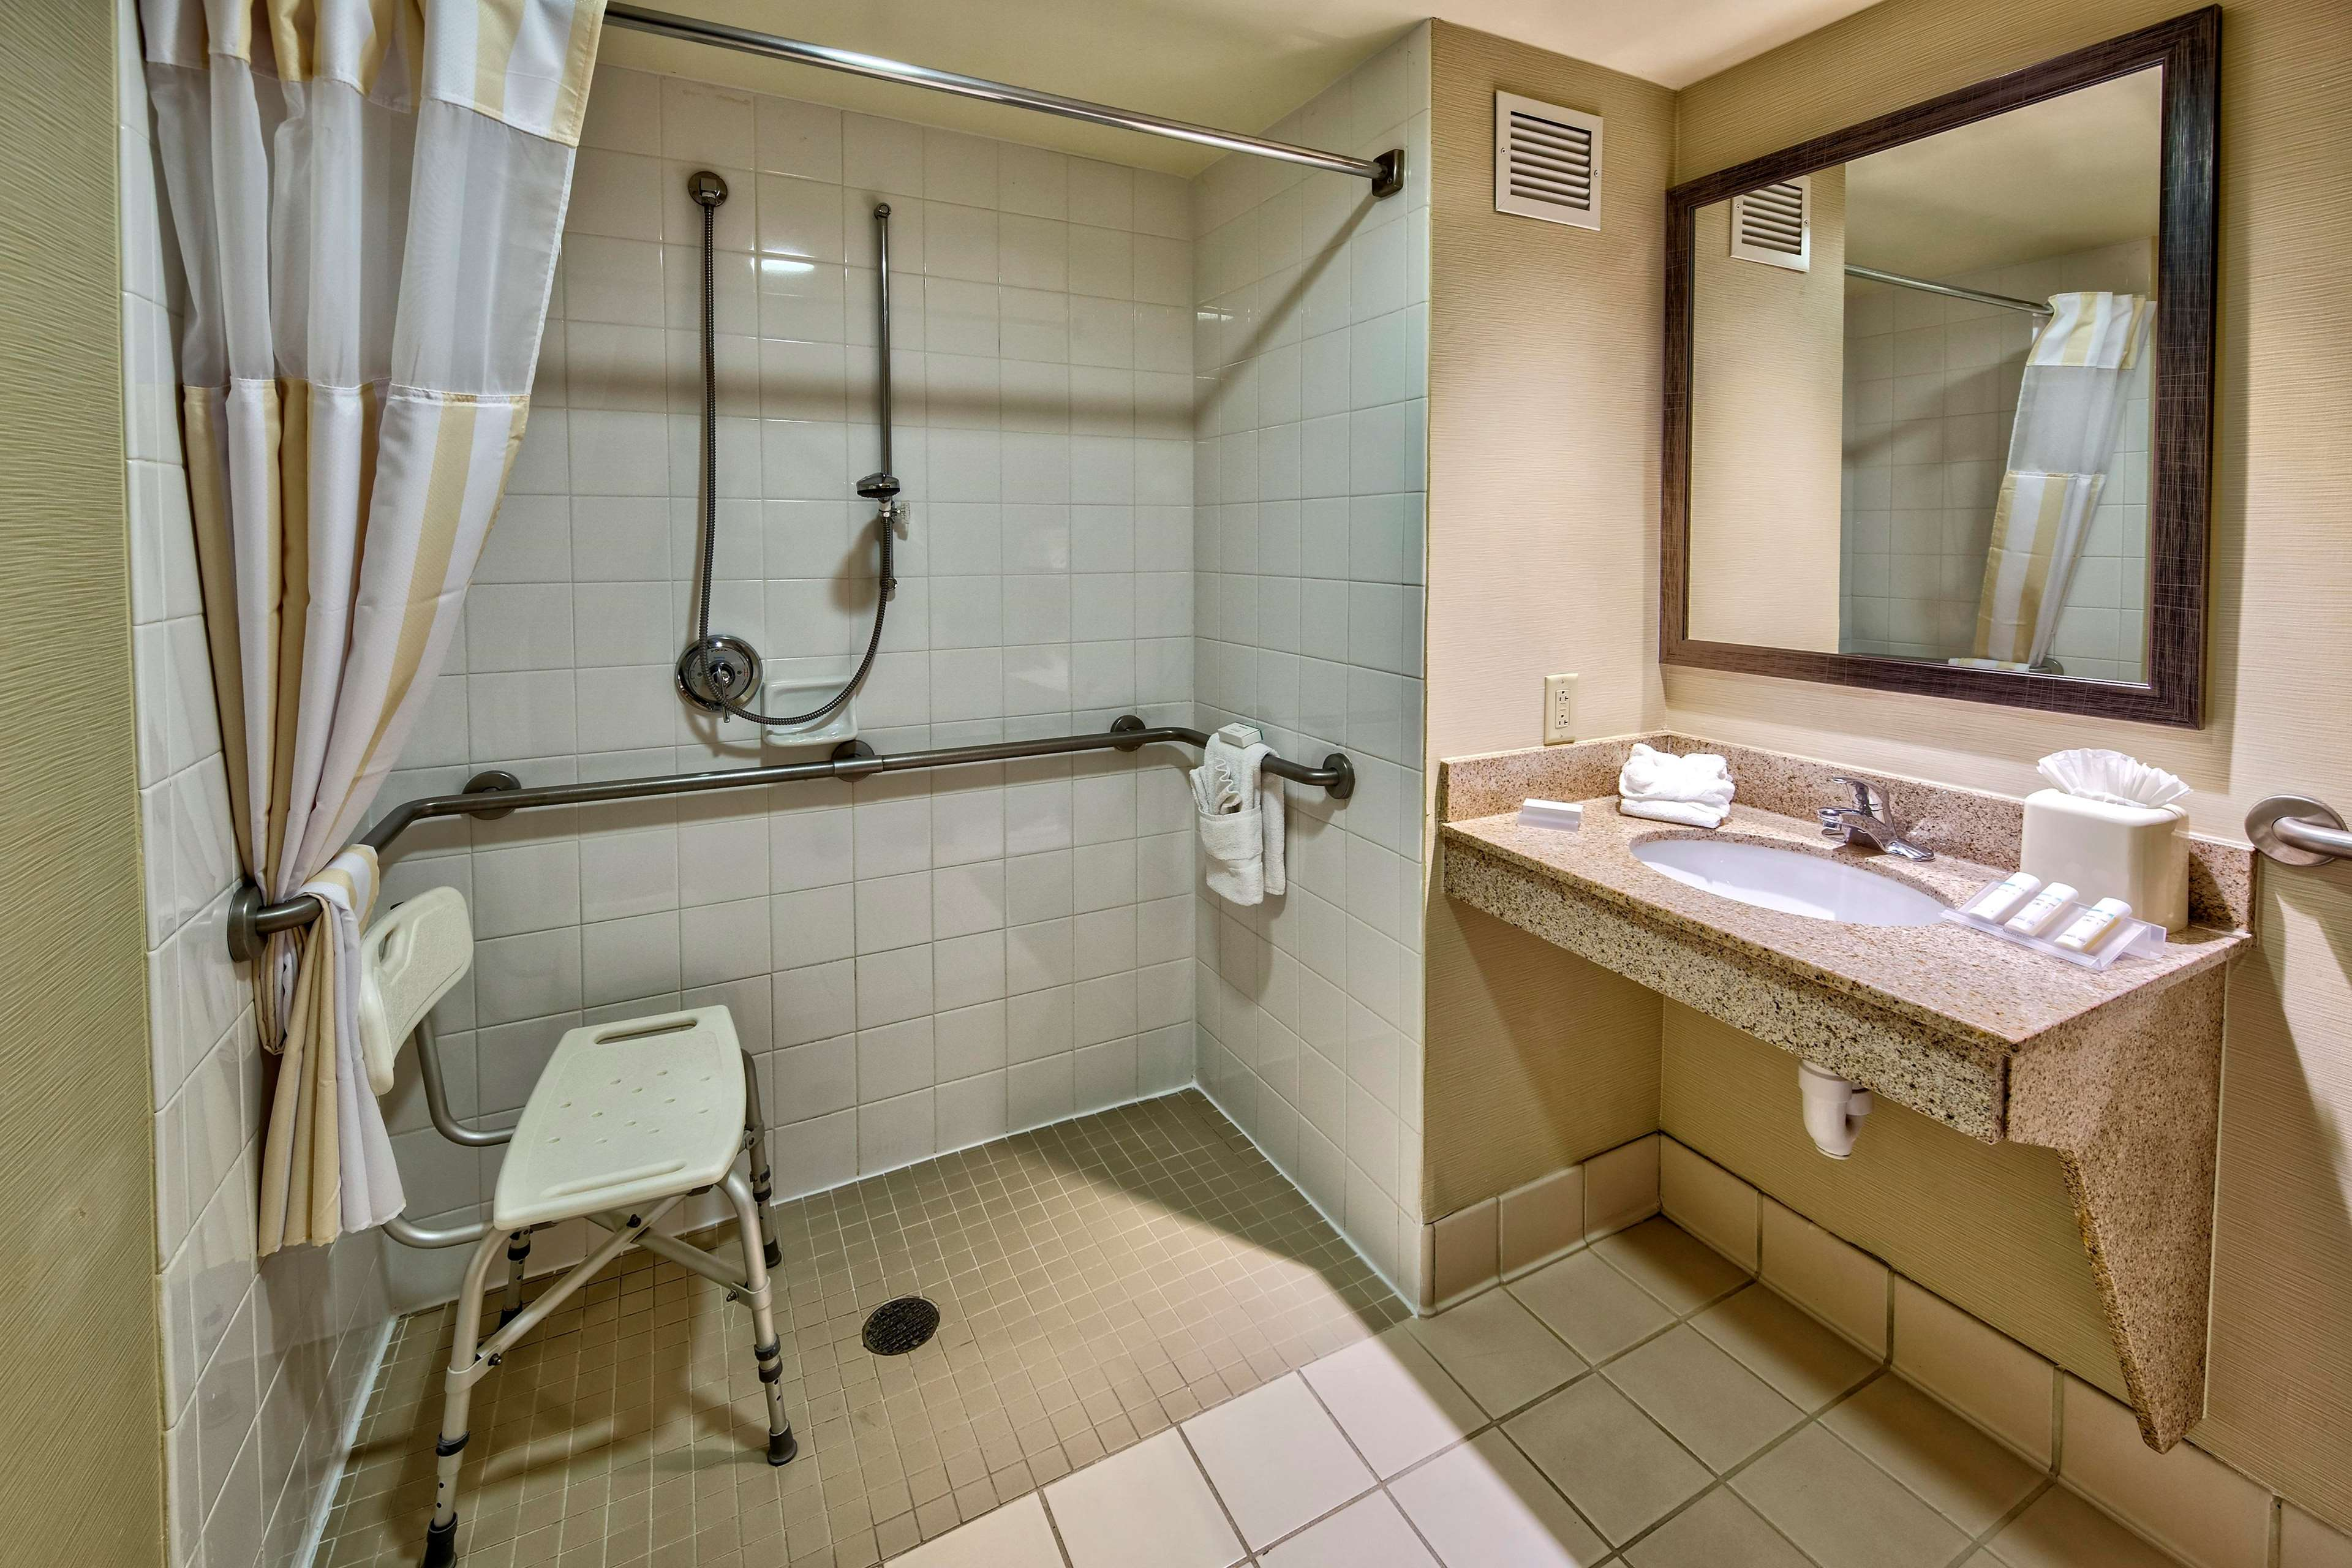 Hilton Garden Inn Houston/Bush Intercontinental Airport image 17